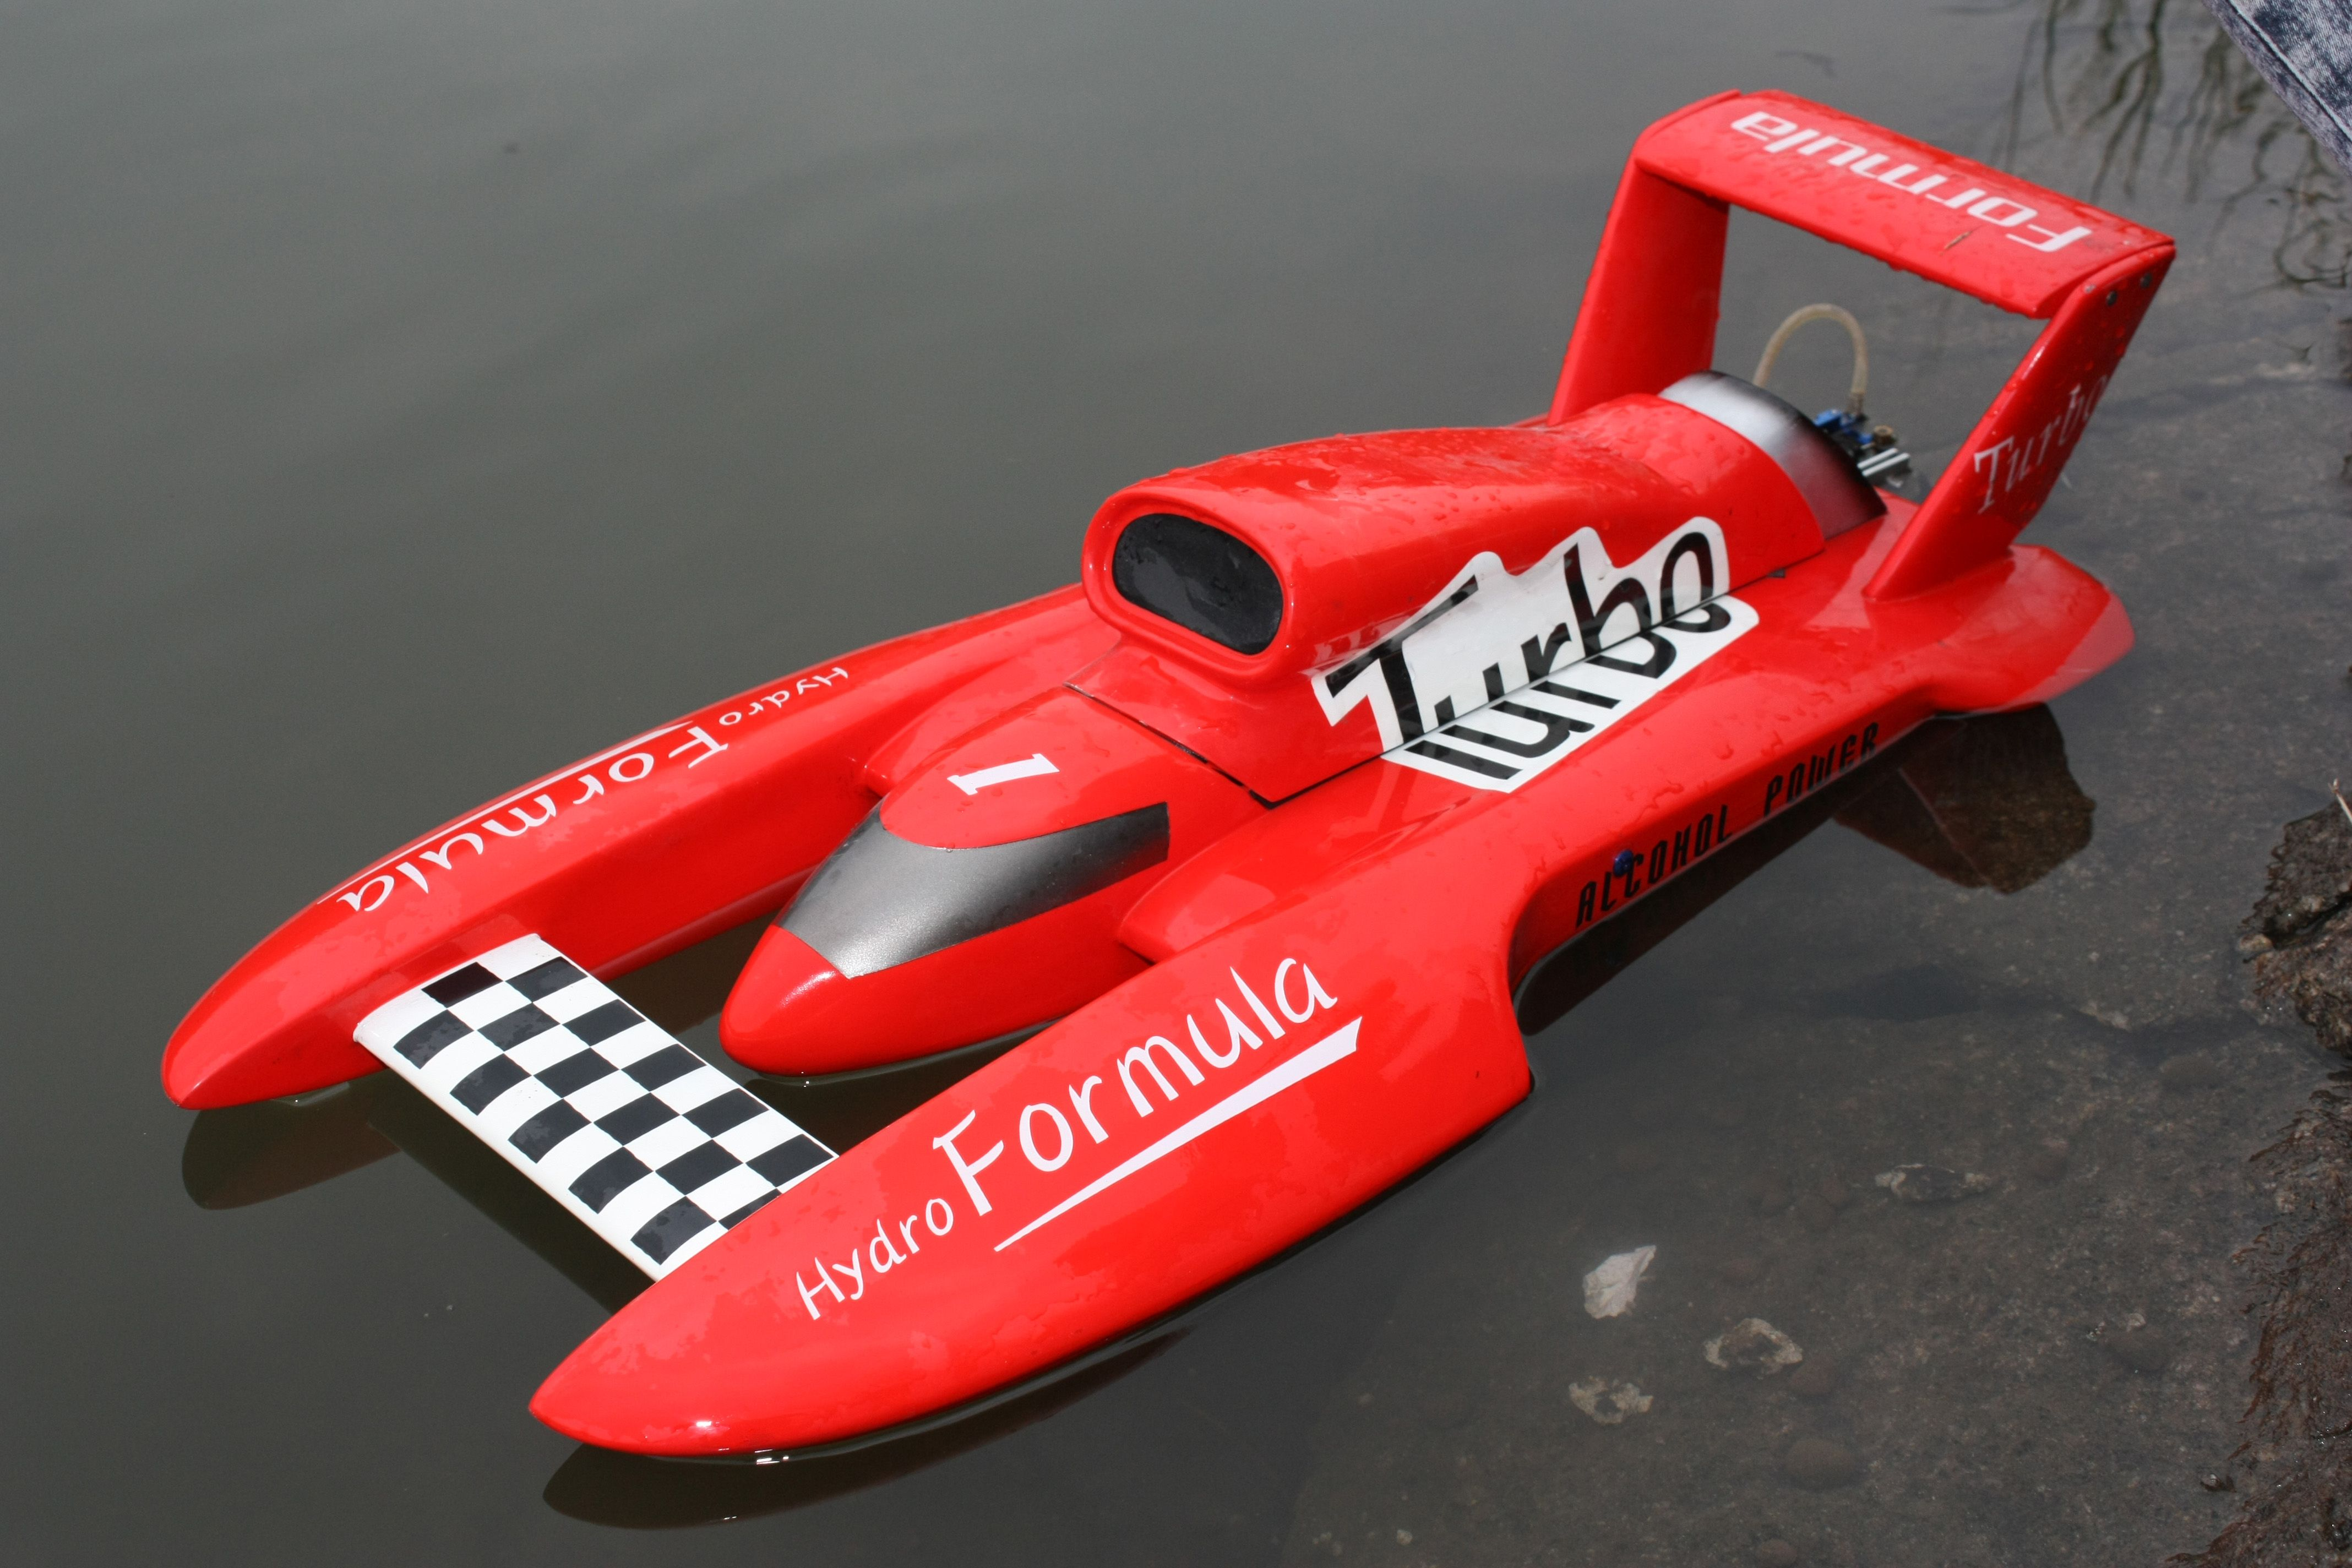 Hydro formula 700bp red 700mm brushless motor powered rc boat